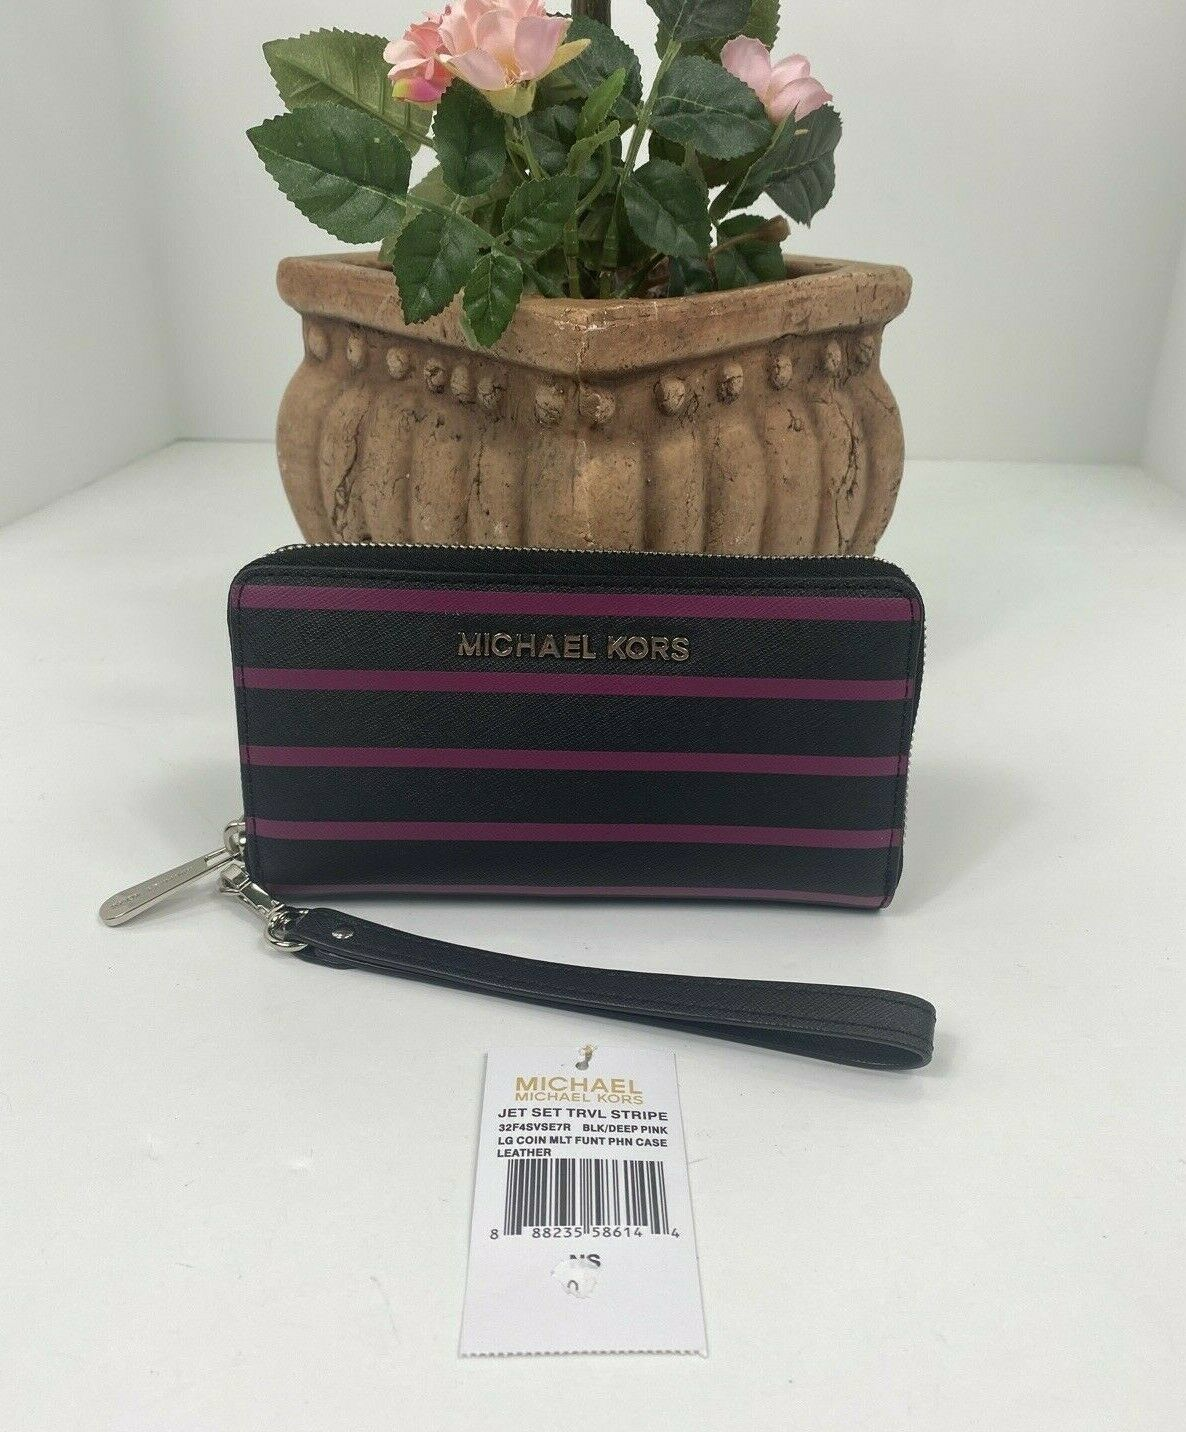 Primary image for New Michael Kors Wallet Jet Set Coin Phone Black Pink Stripe Leather Zip W10